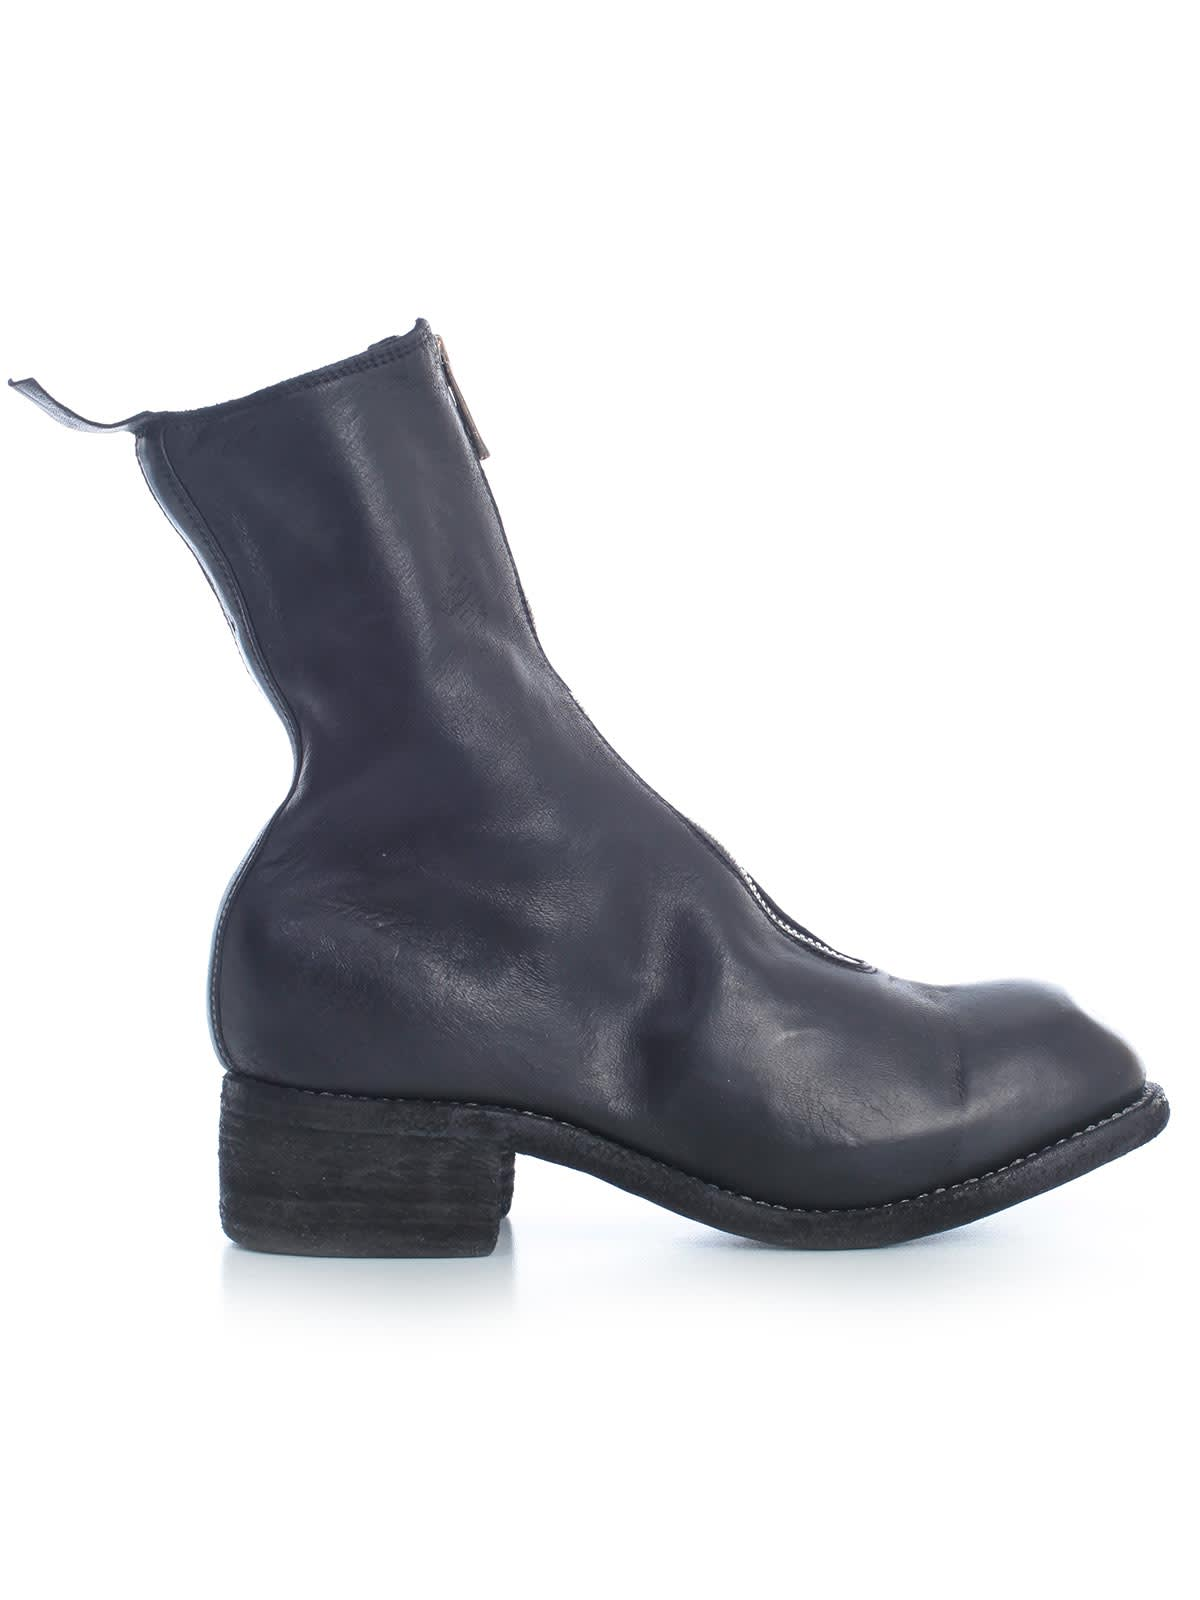 Guidi Boots | italist, ALWAYS LIKE A SALE